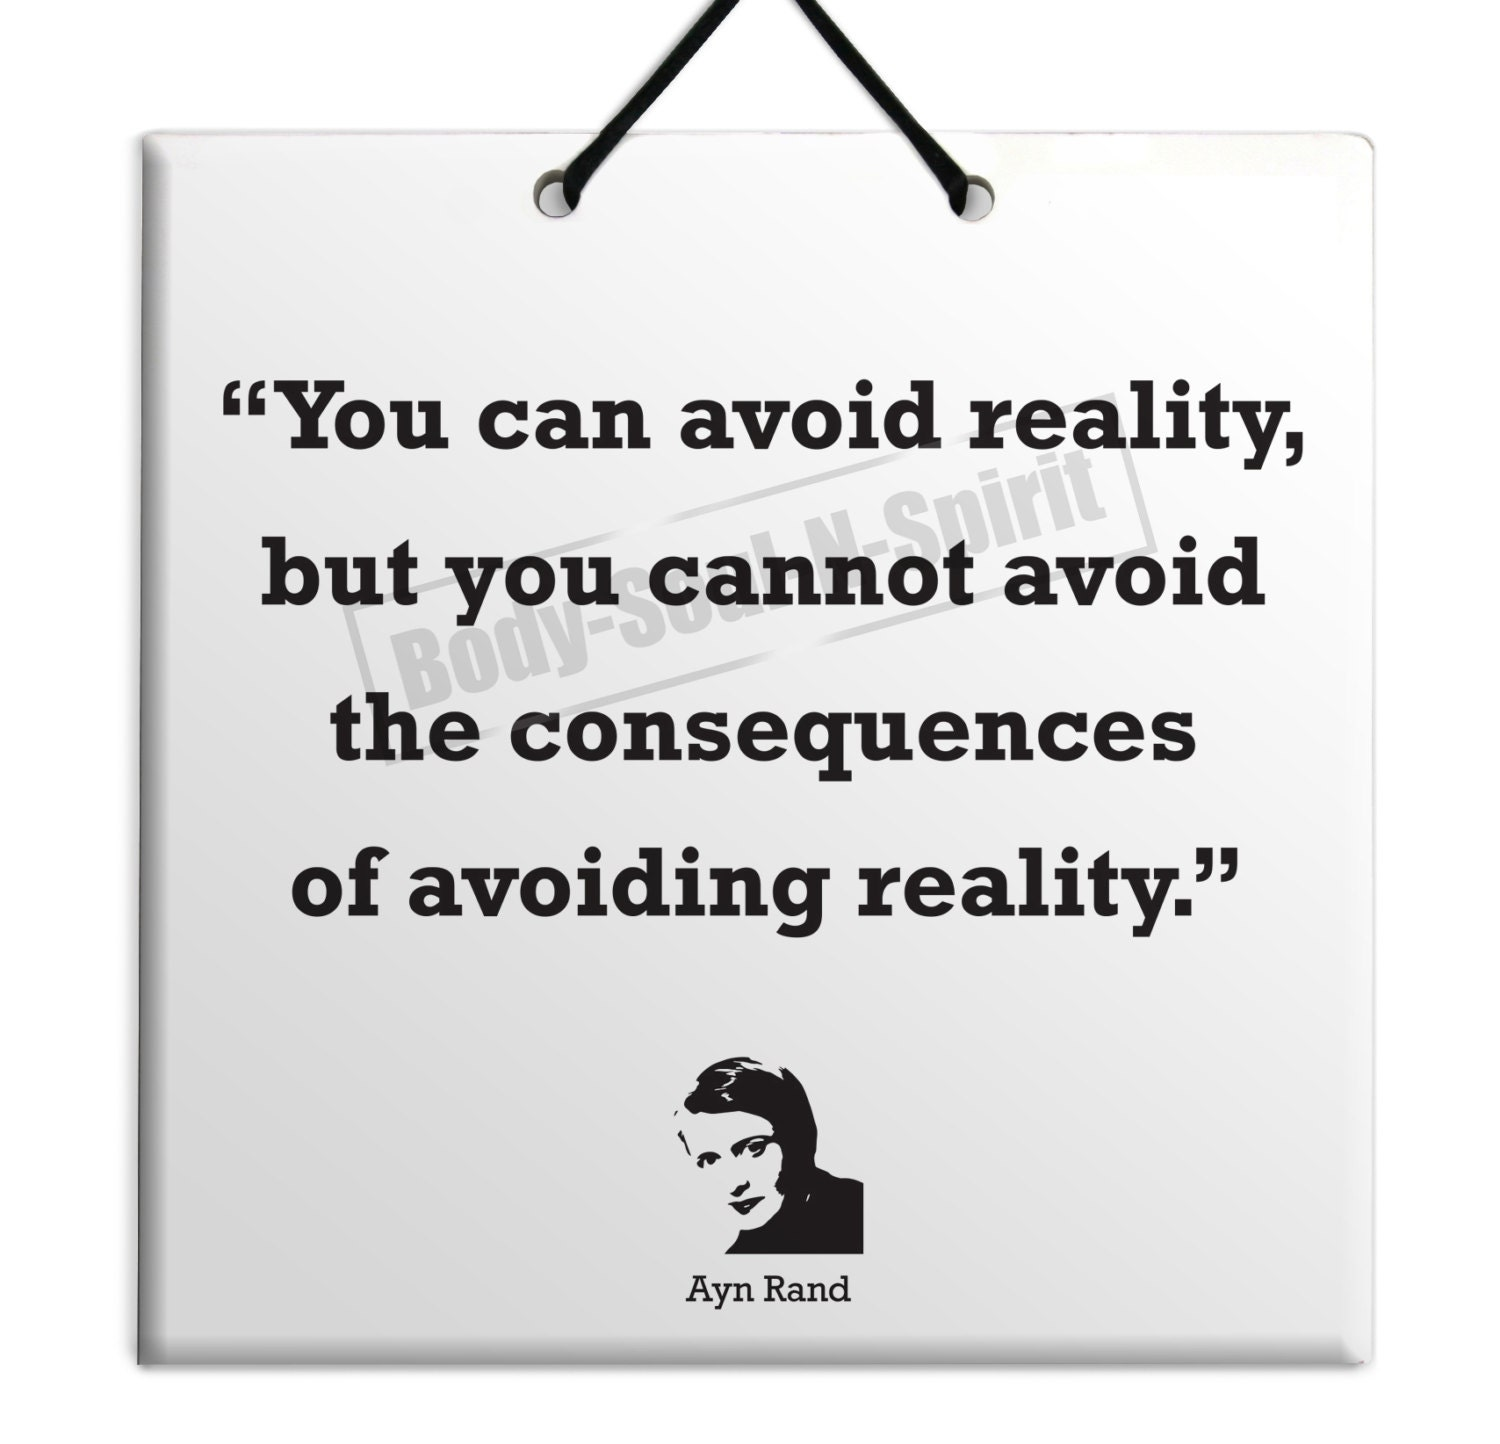 Ayn Rand Consequence of avoiding reality Quote Ceramic